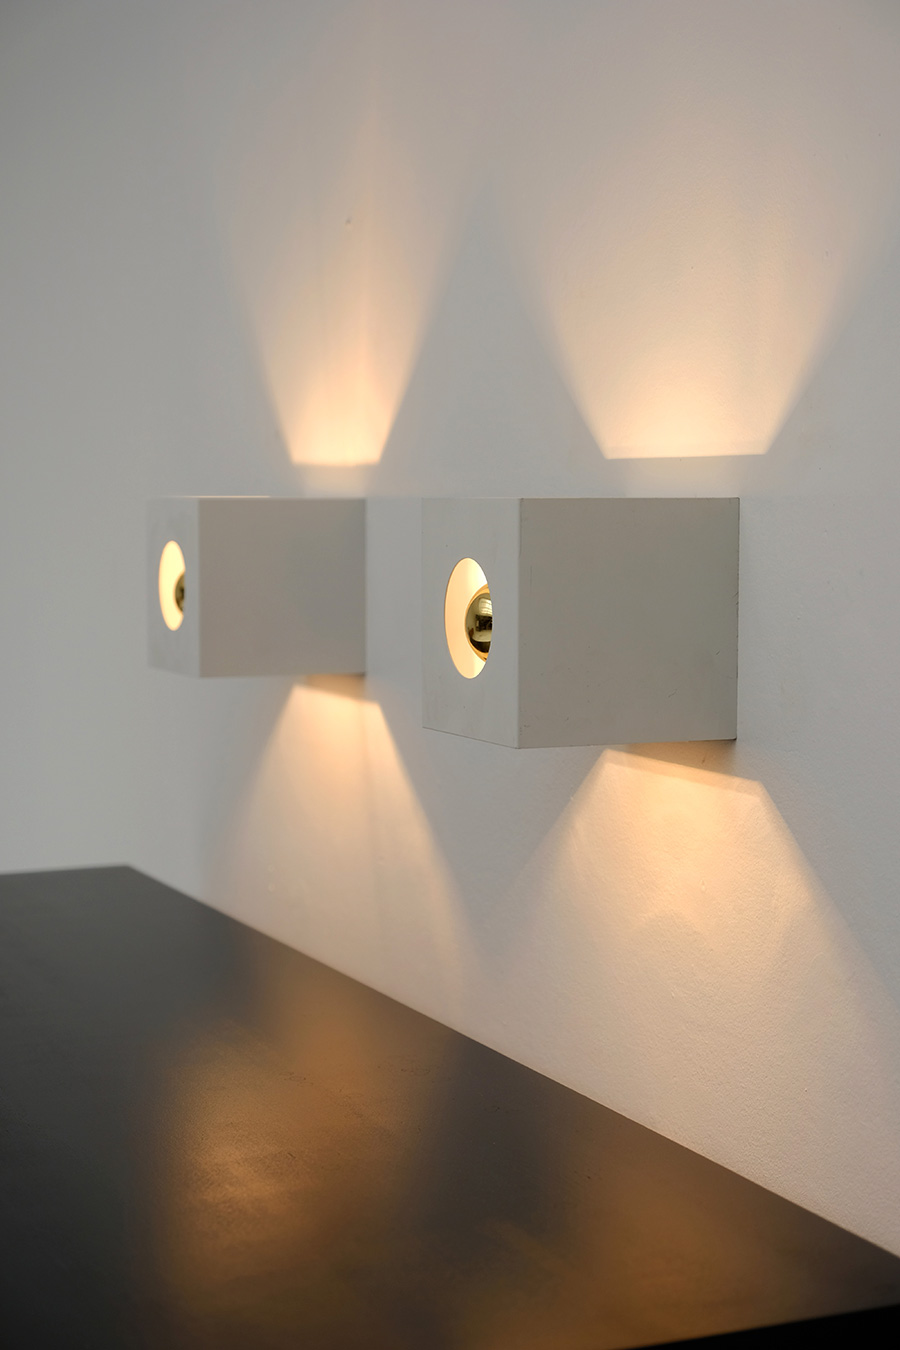 PAIR OF PHILIPS WALL SCONCES 1960Simage 5